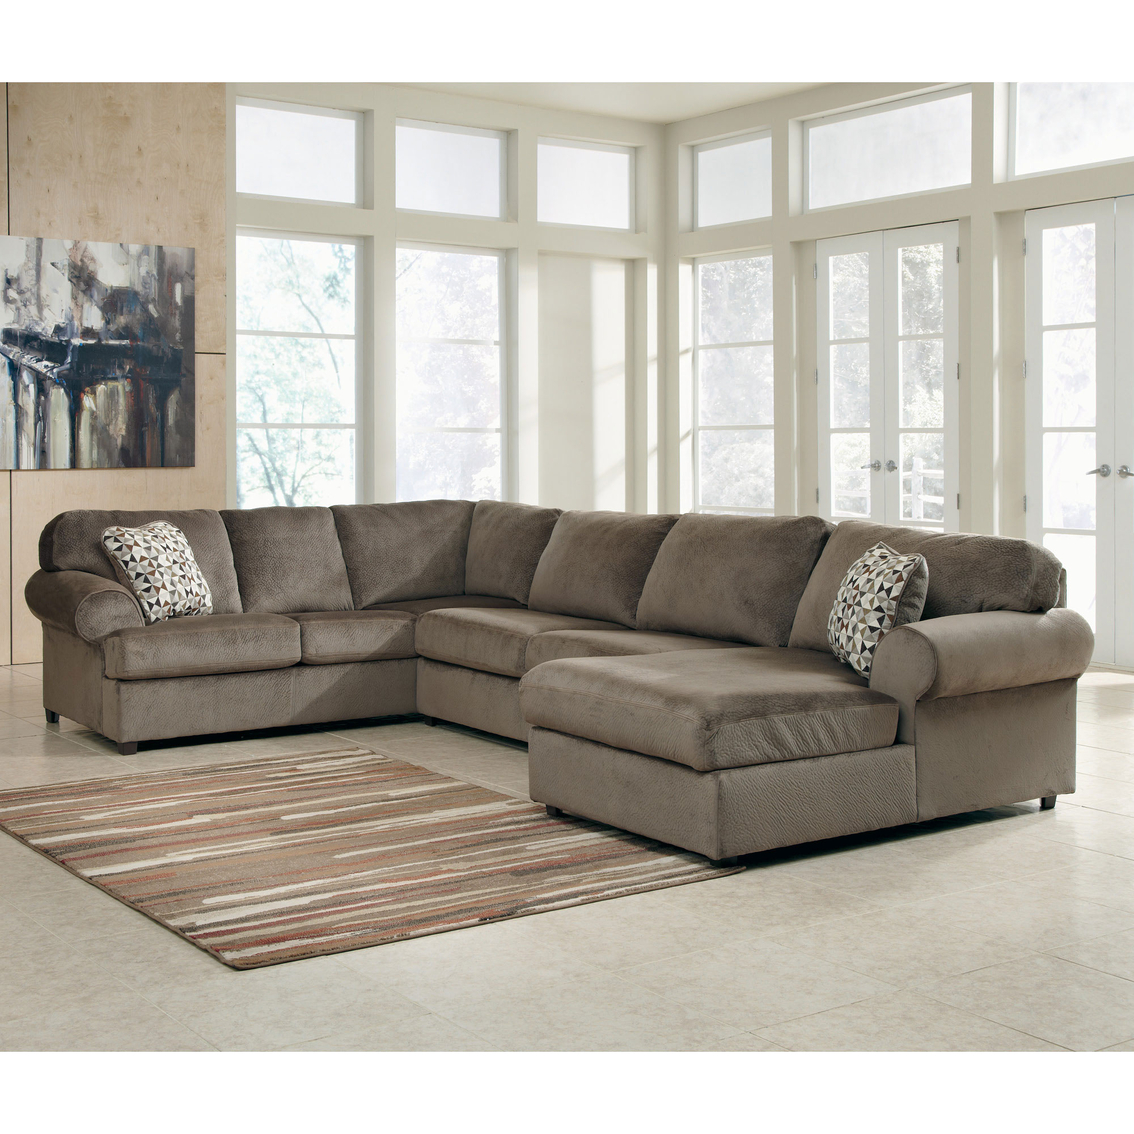 Remarkable Signature Design By Ashley Jessa Place 3 Pc Sectional Sofa Gmtry Best Dining Table And Chair Ideas Images Gmtryco